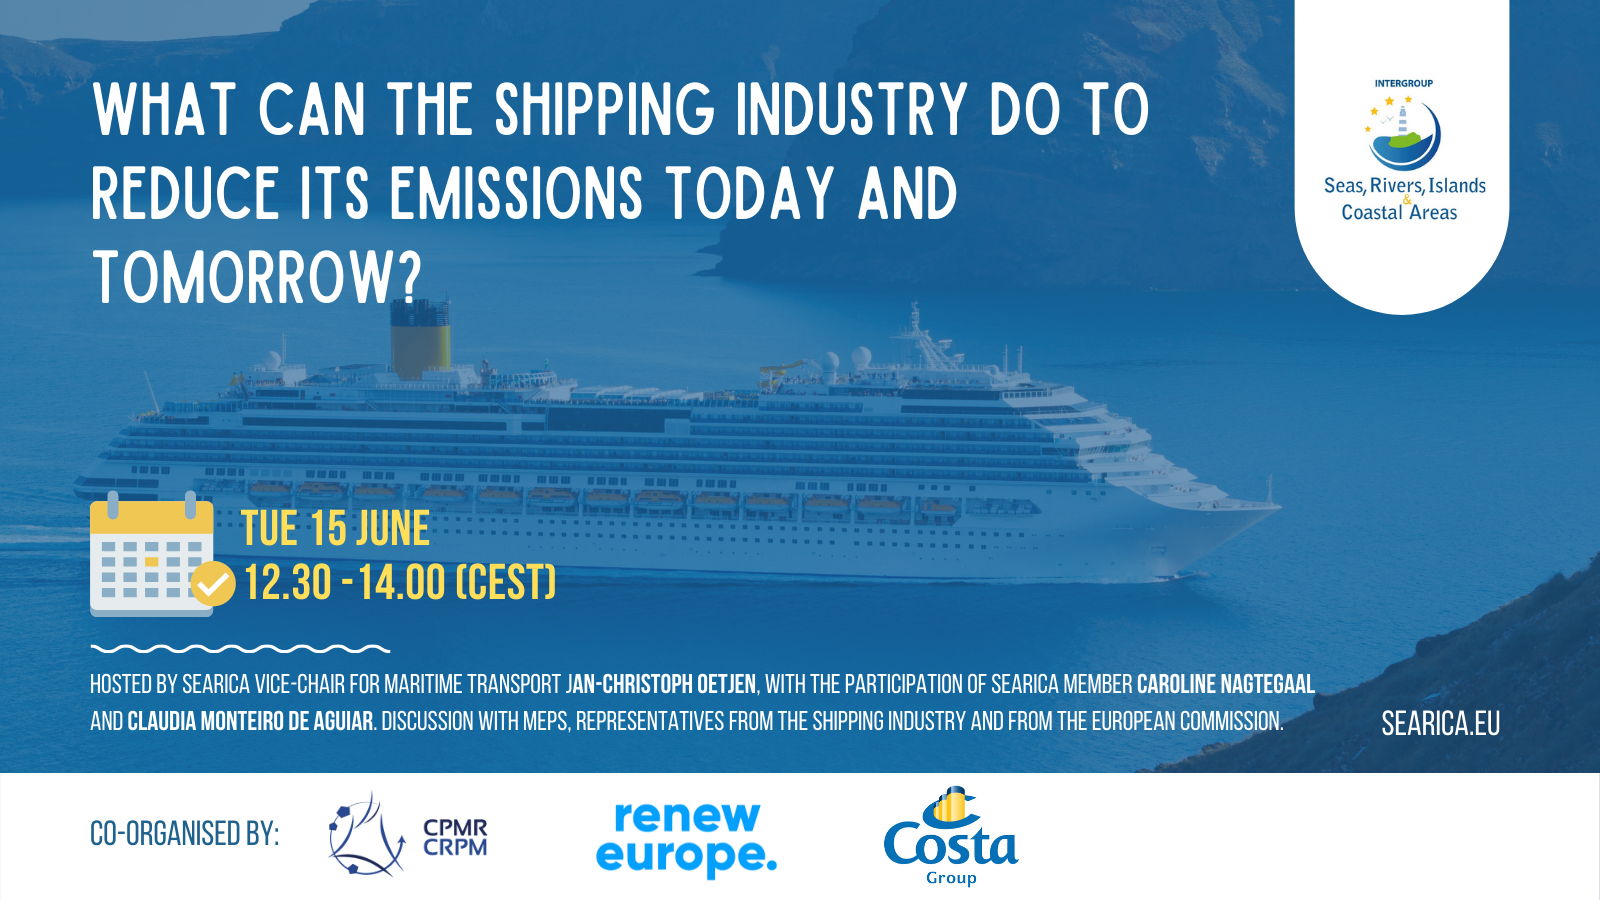 event announcement poster with cruise ship